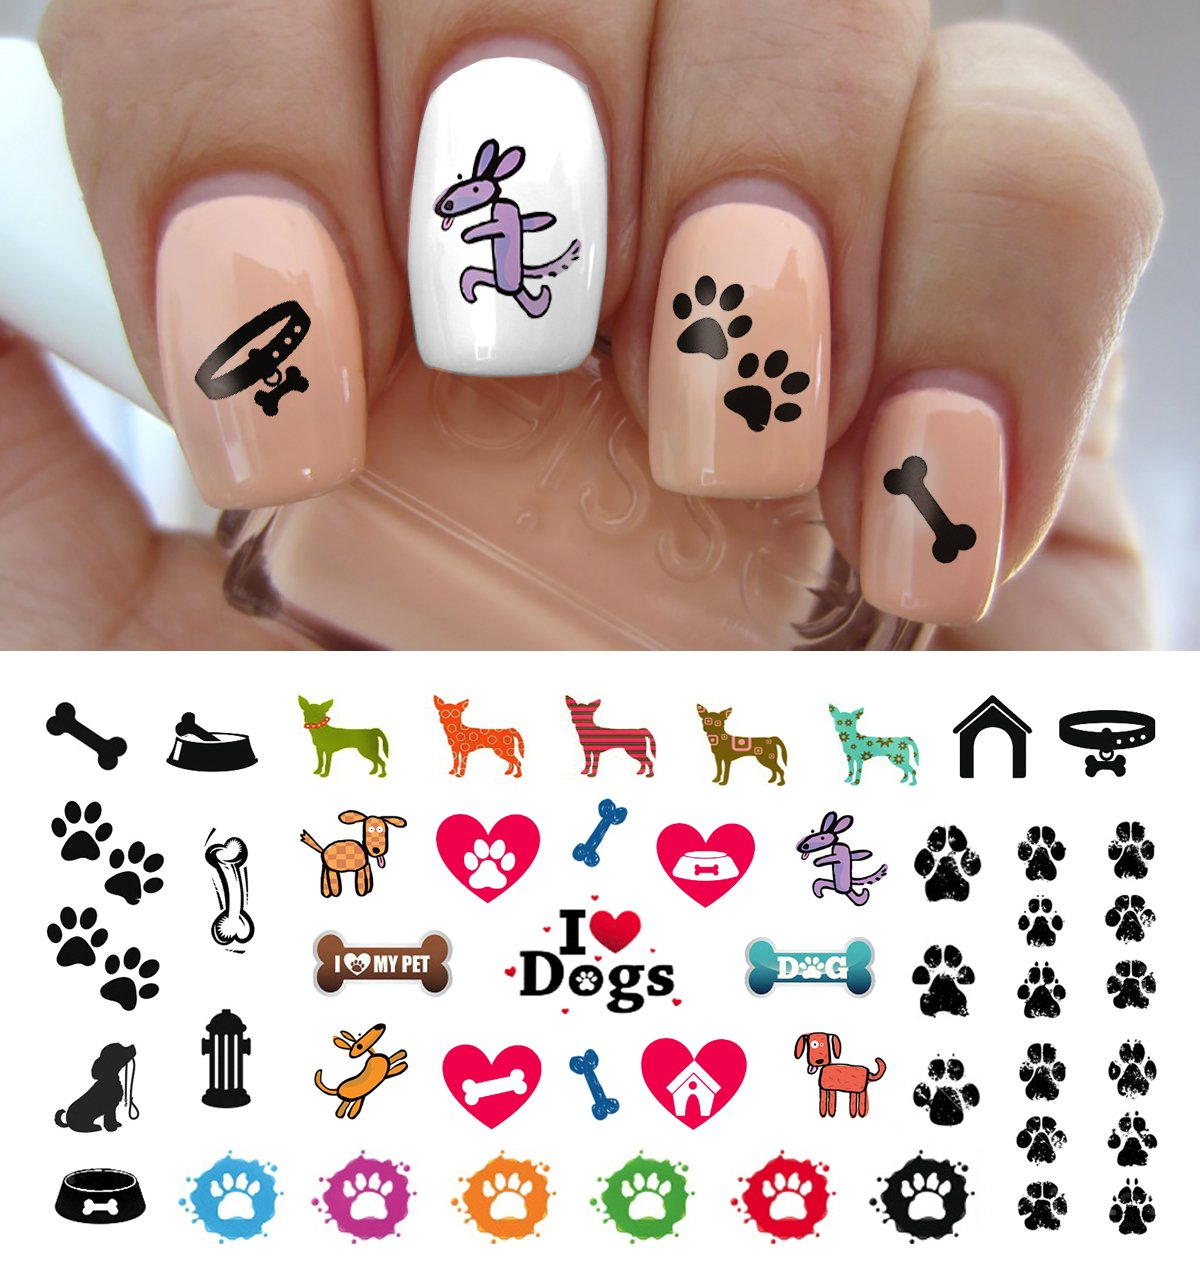 I Love My Dog Paw Prints Water Slide Nail Art Decals- Salon Quality 5.5